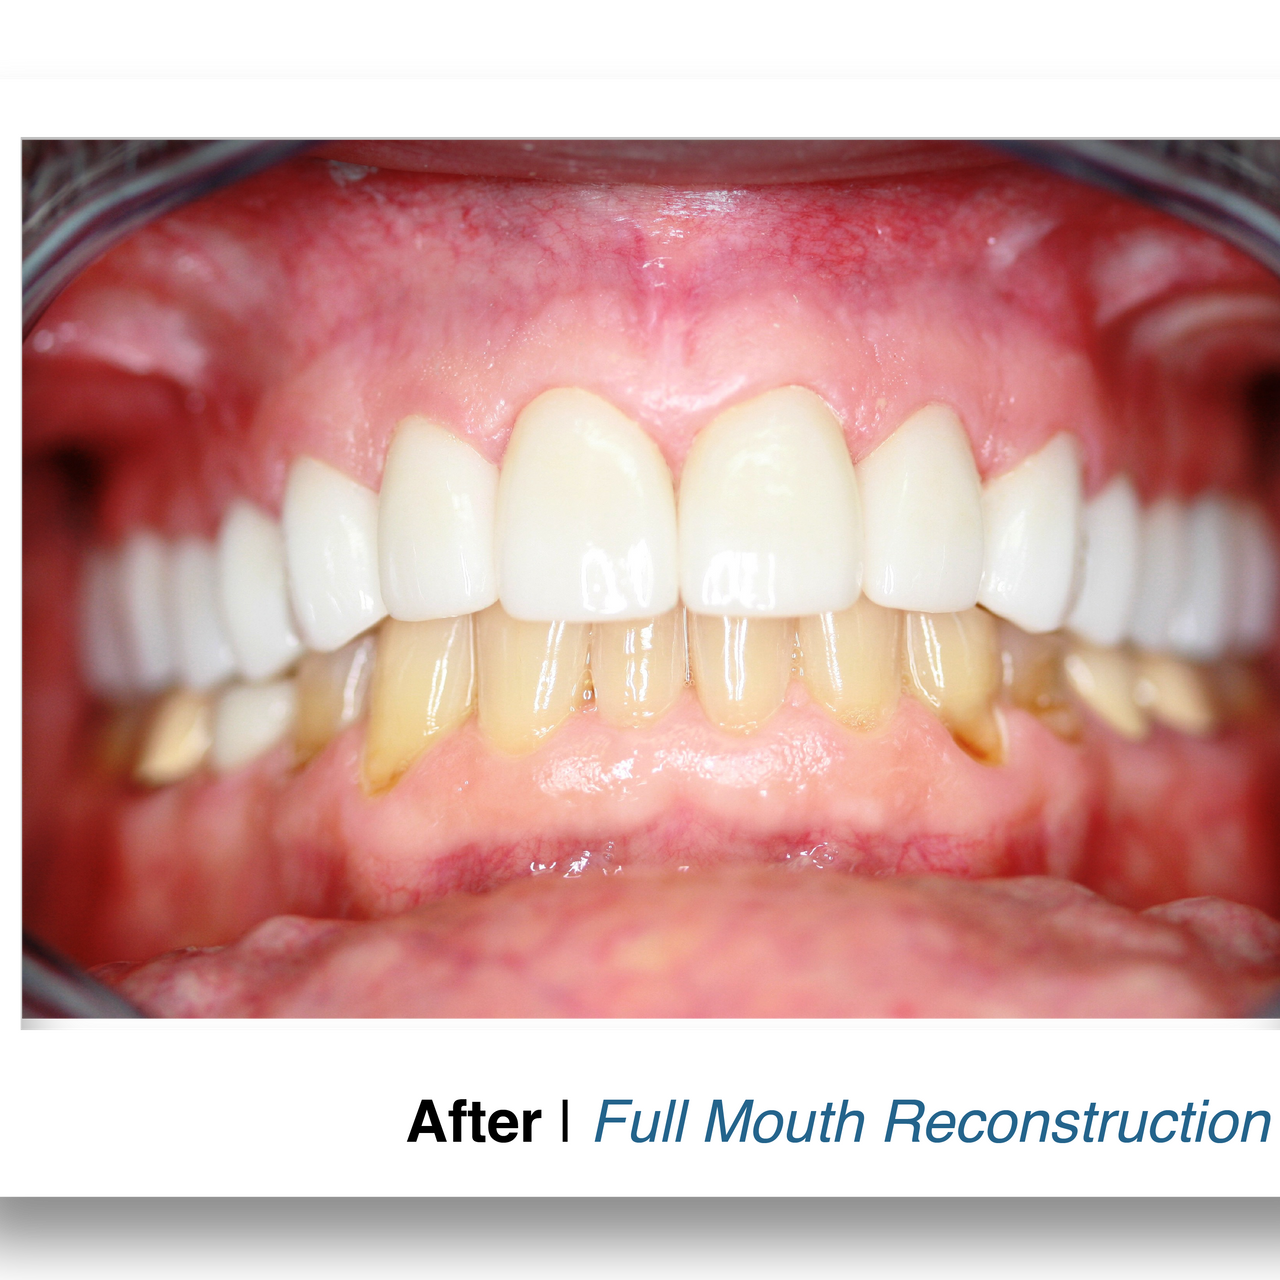 After - Full Mouth Reconstruction